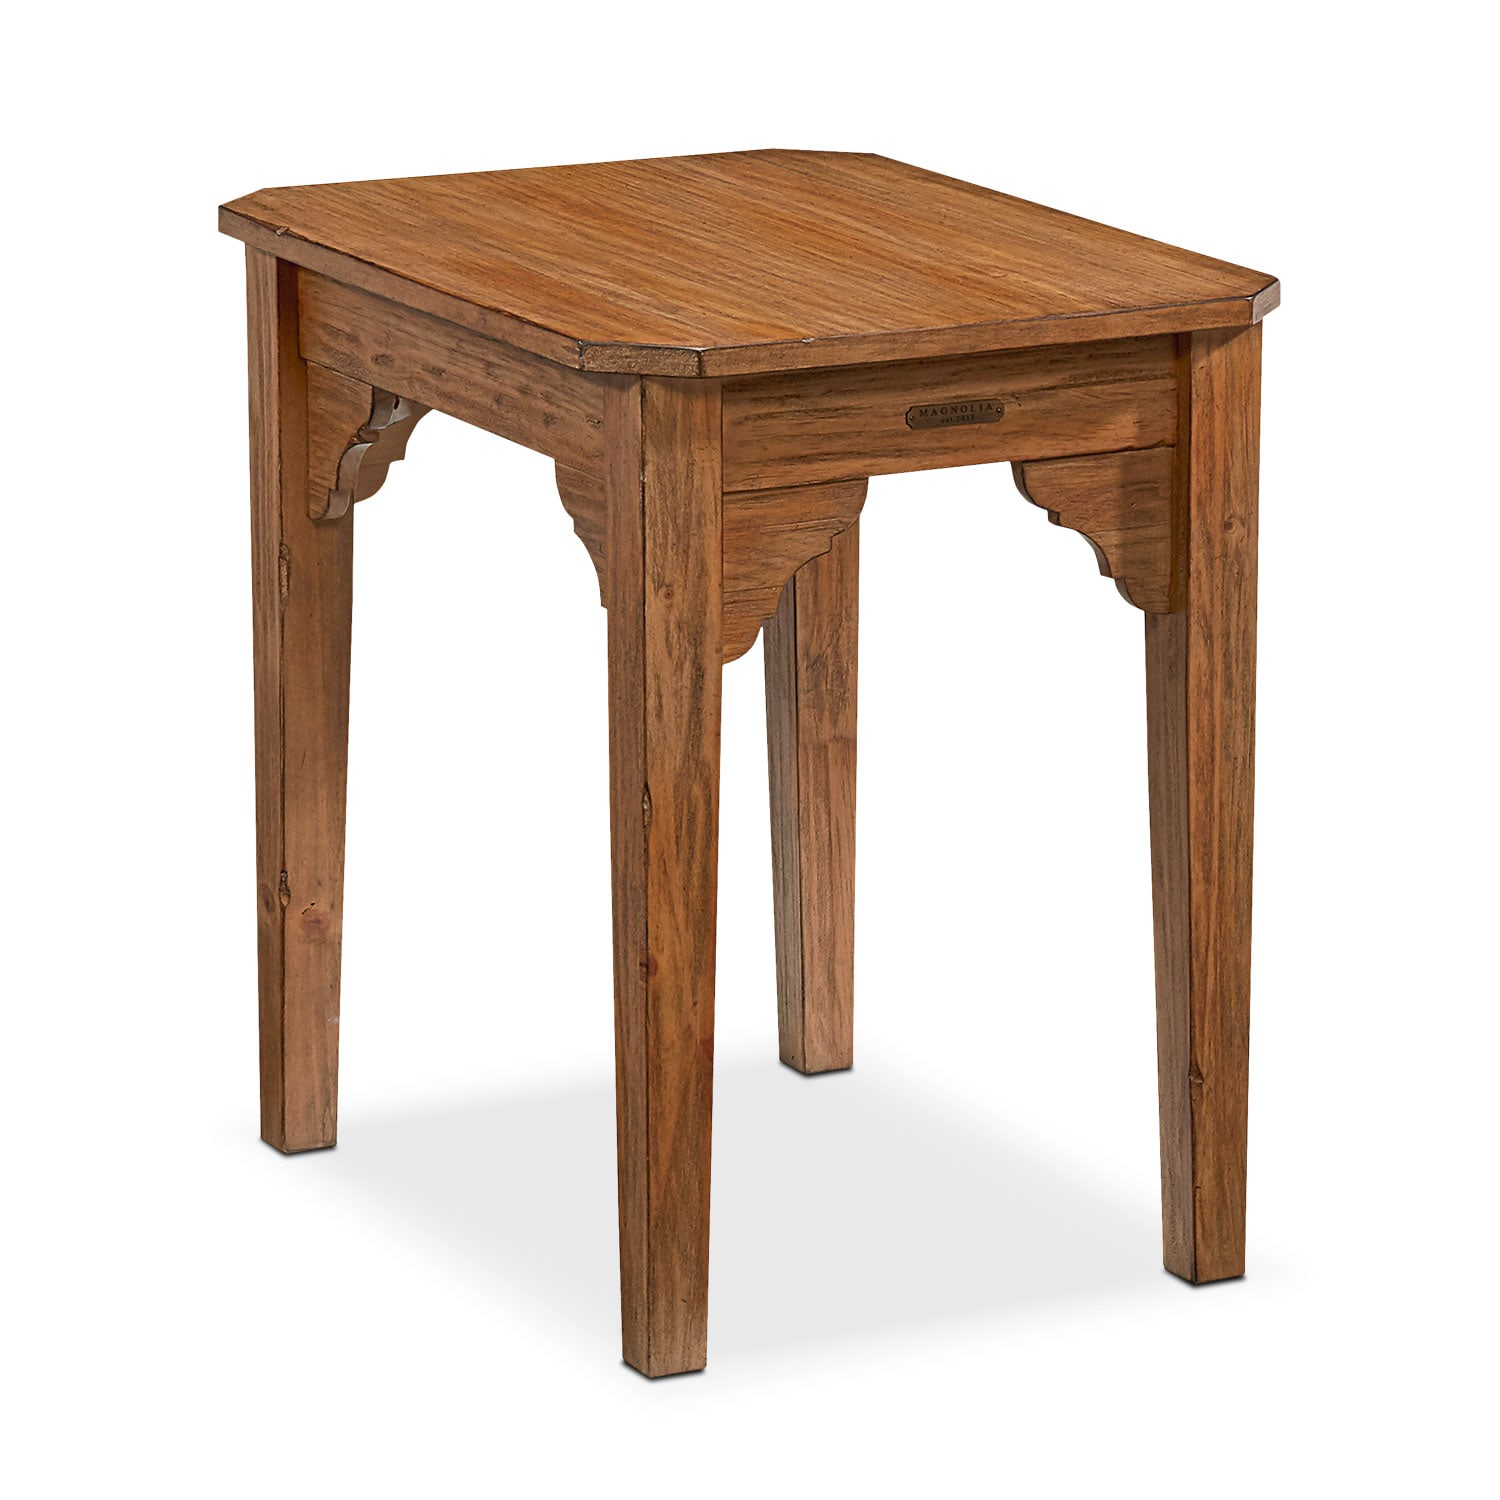 Farmhouse Bracket End Table - Bench